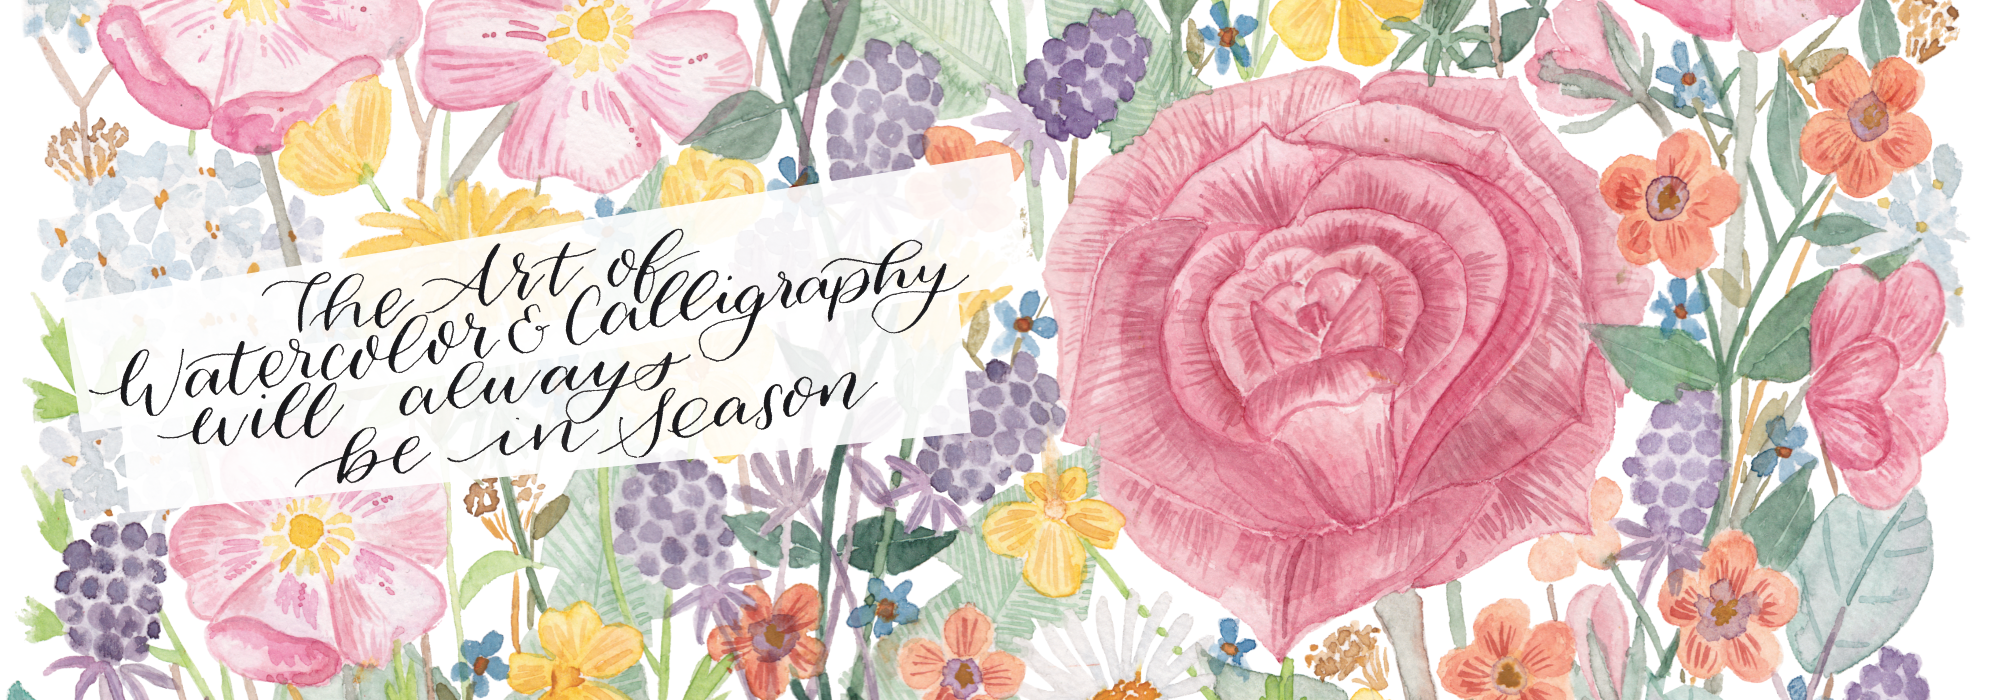 personalisierte brautstrauss illustrationen header Add - besuche den shop - inkanotes Calligraphy Kalligraphie Watercolor Aquarell Florals Botanicals Blumen Botanische Designer Deutschland Germany Nachhaltig Ecofriendly